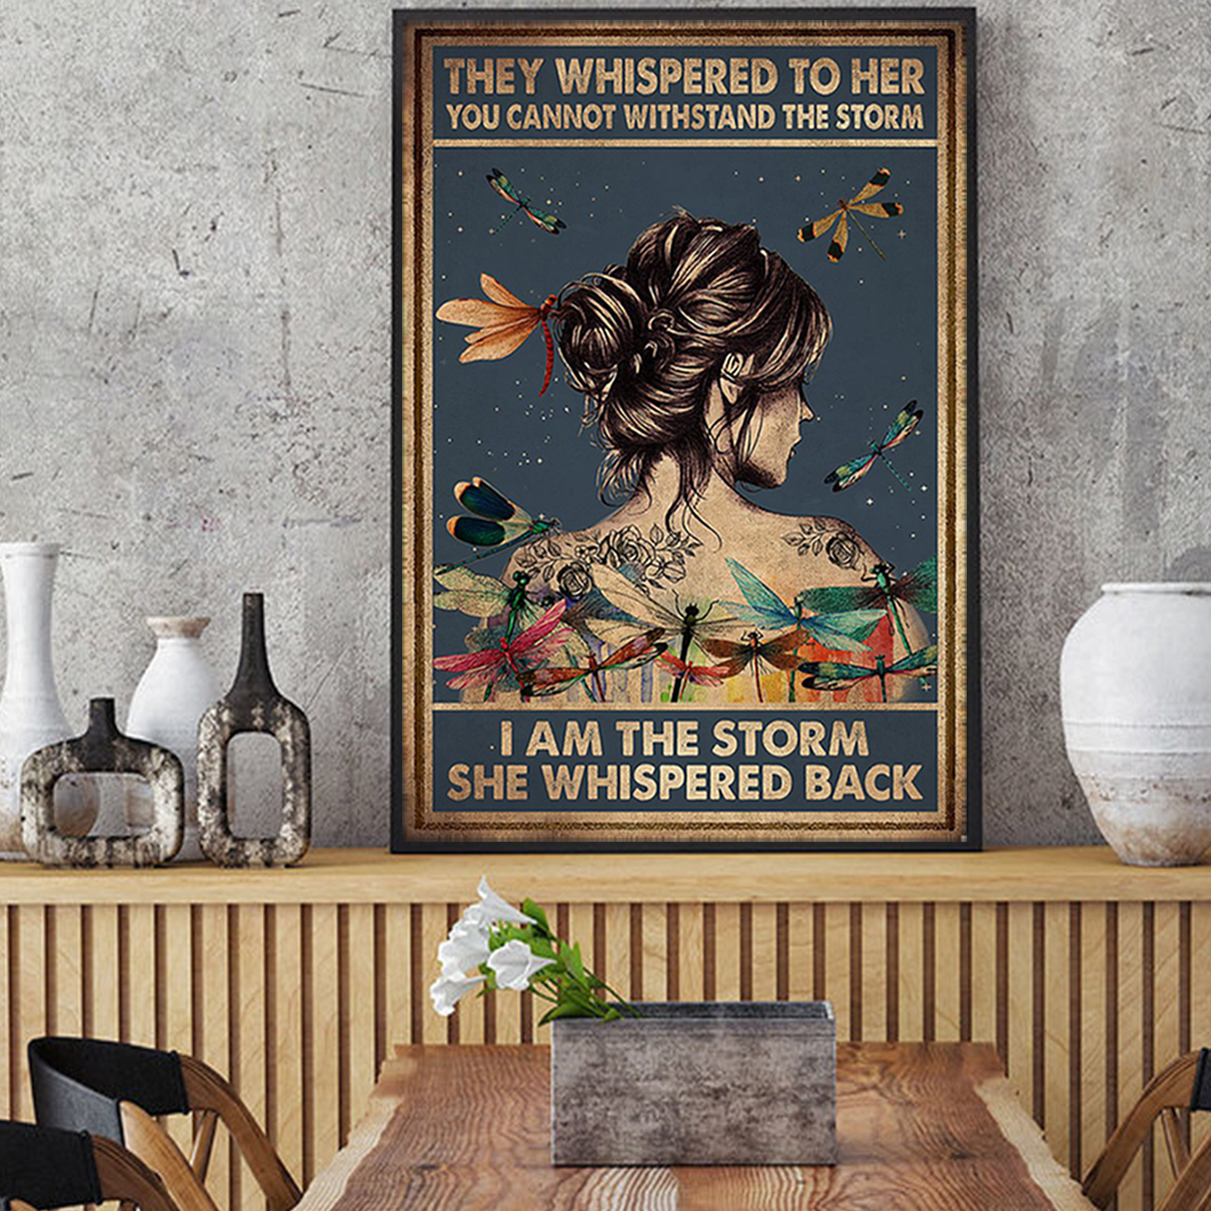 Hippie dragonfly tattoo girl they whispered to her you cannot withstand the storm poster A2